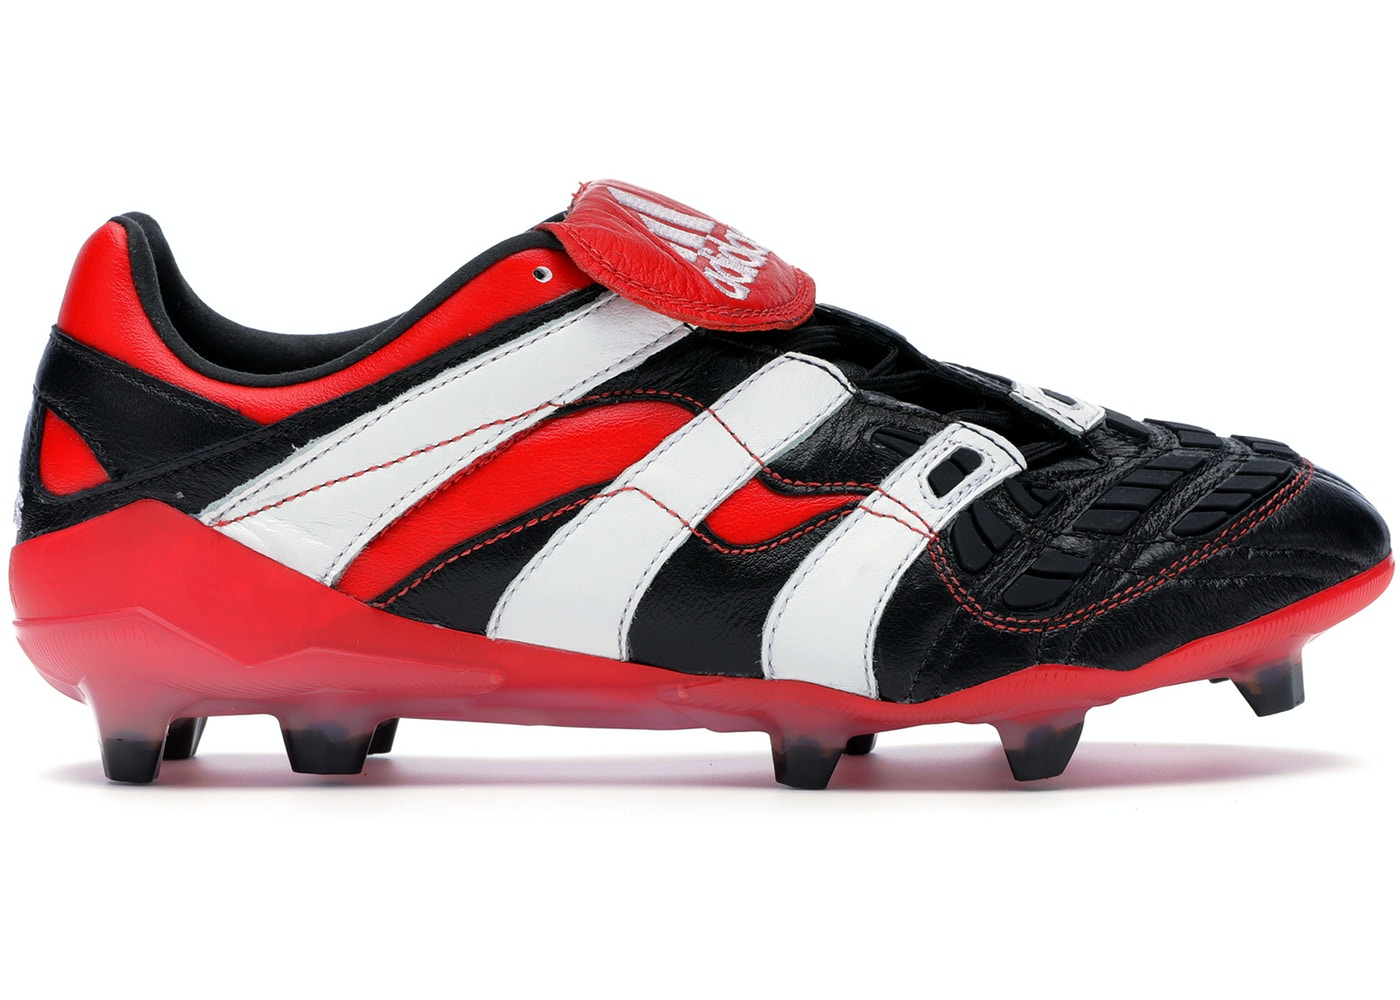 pas mal dcd60 b96ec adidas Predator Accelerator Firm Ground Cleat Black White Red